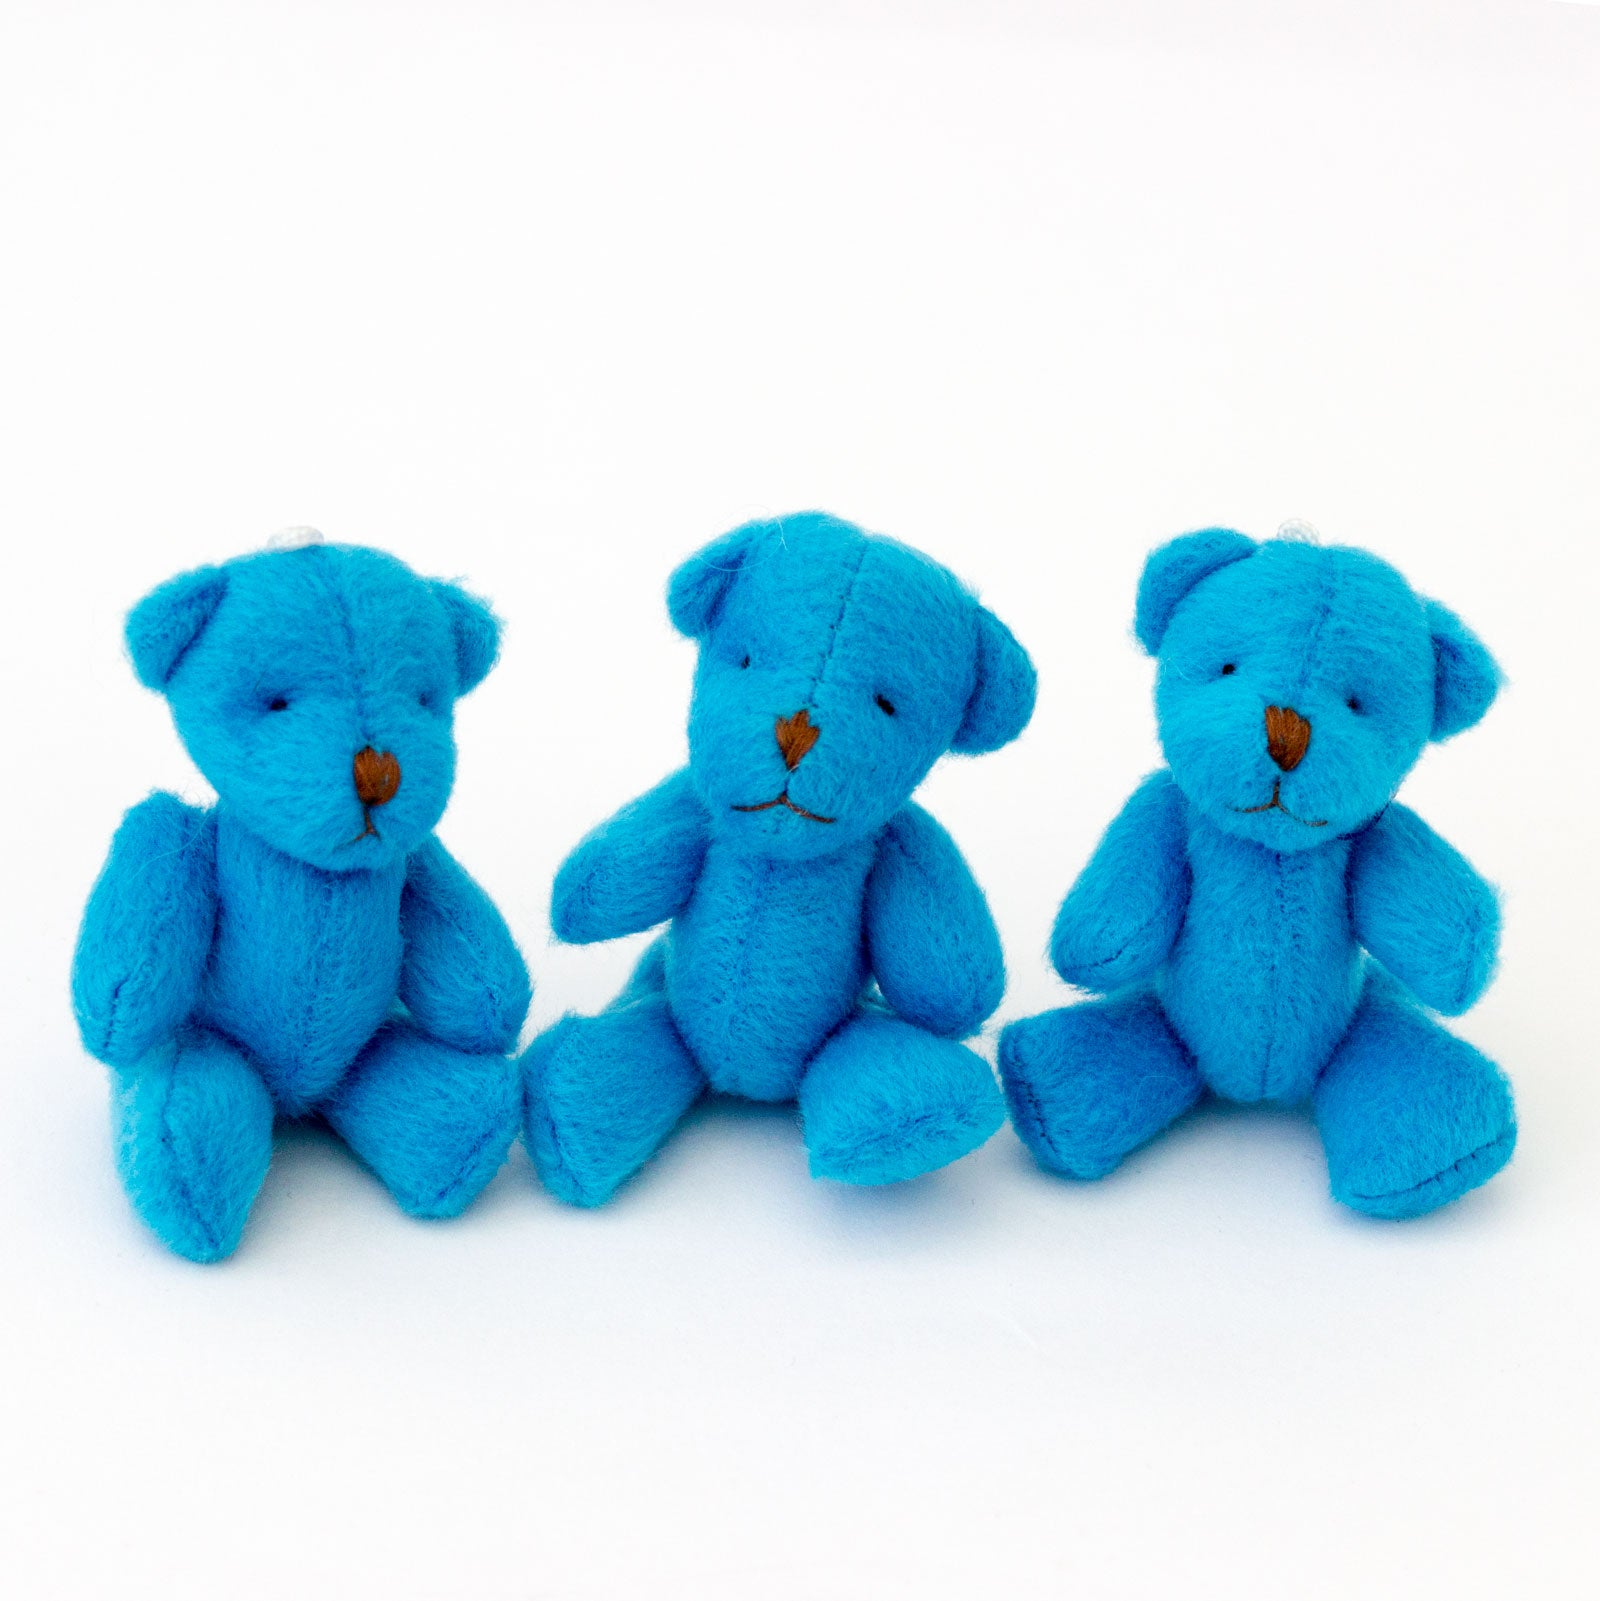 Small BLUE Teddy Bears X 70 - Cute Soft Adorable